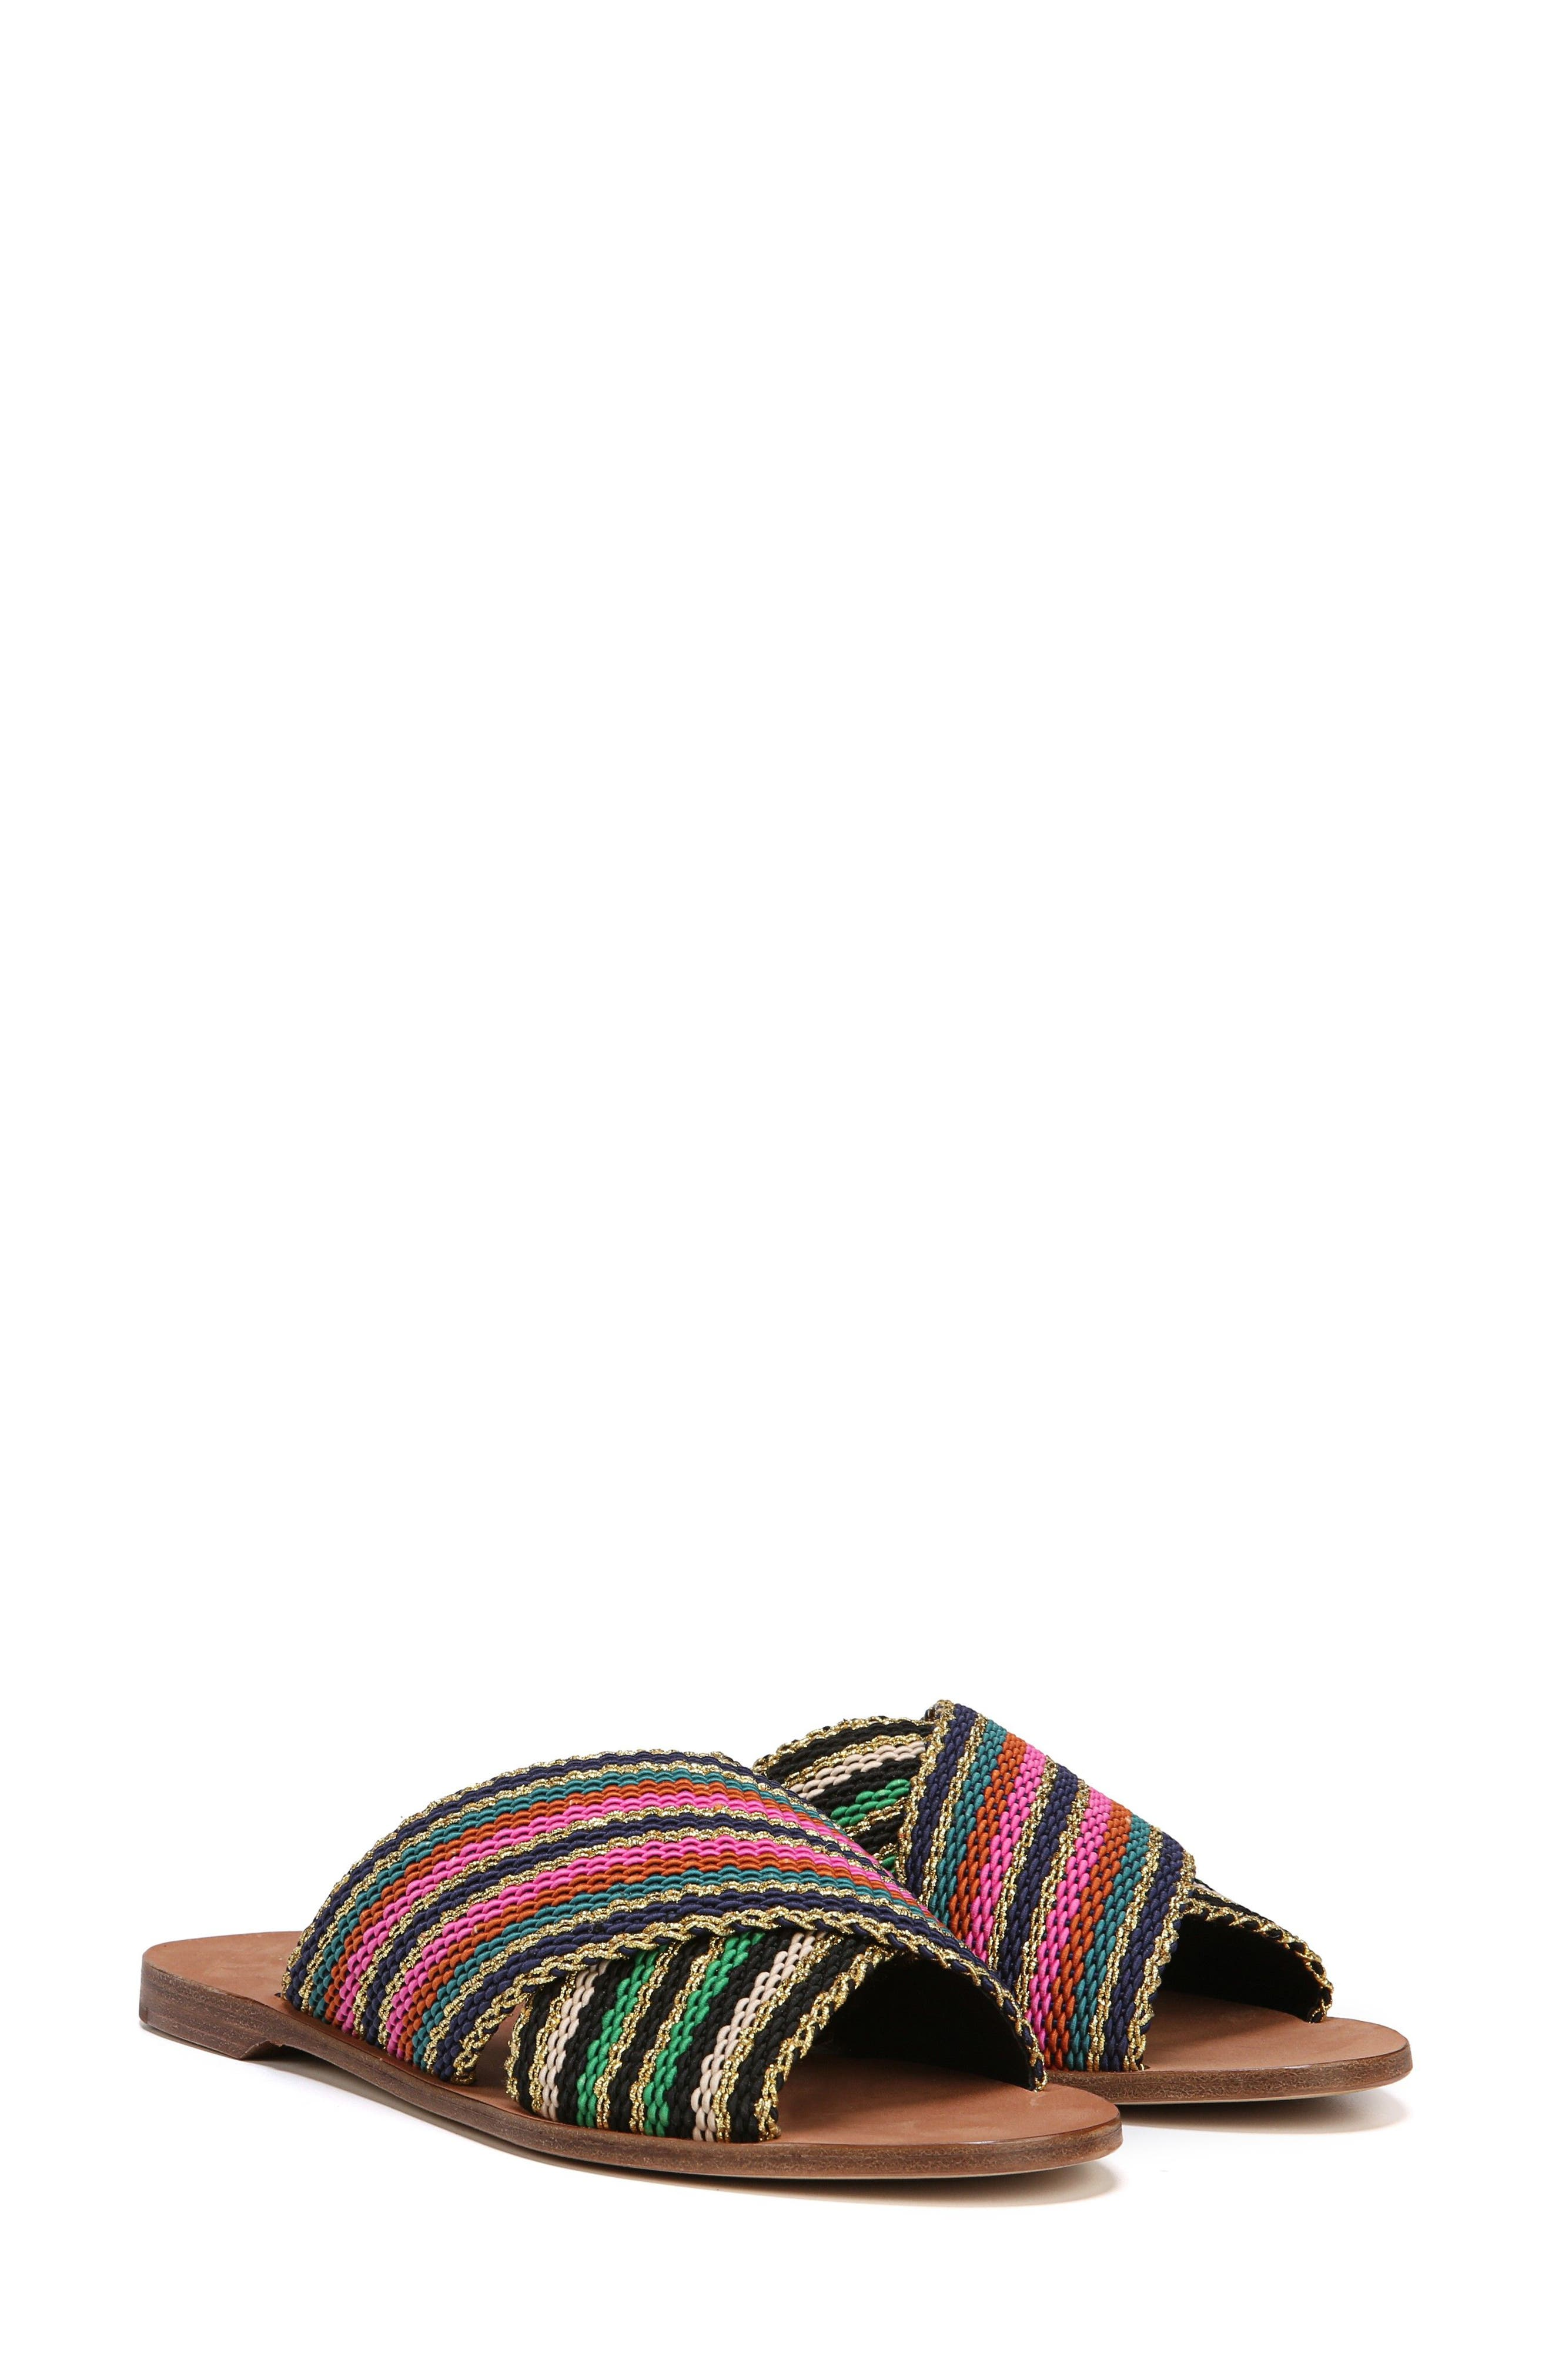 Cindi Woven Slide Sandal,                             Alternate thumbnail 6, color,                             BLACK/ GOLD